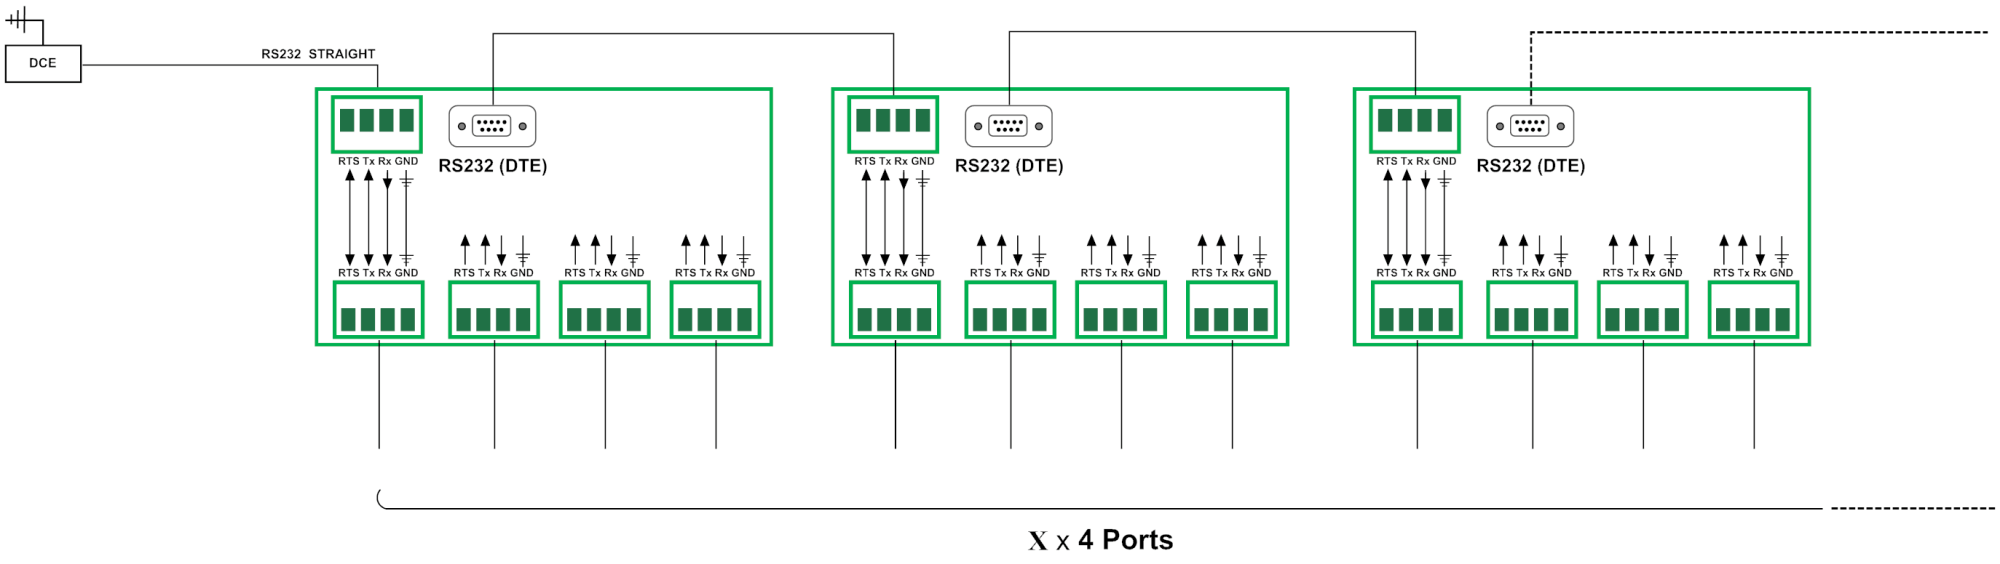 hight resolution of multiple input port connections on the spl4 tb enable ease of expandability an additional spl4 tb can be wired in parallel by wiring its input port in